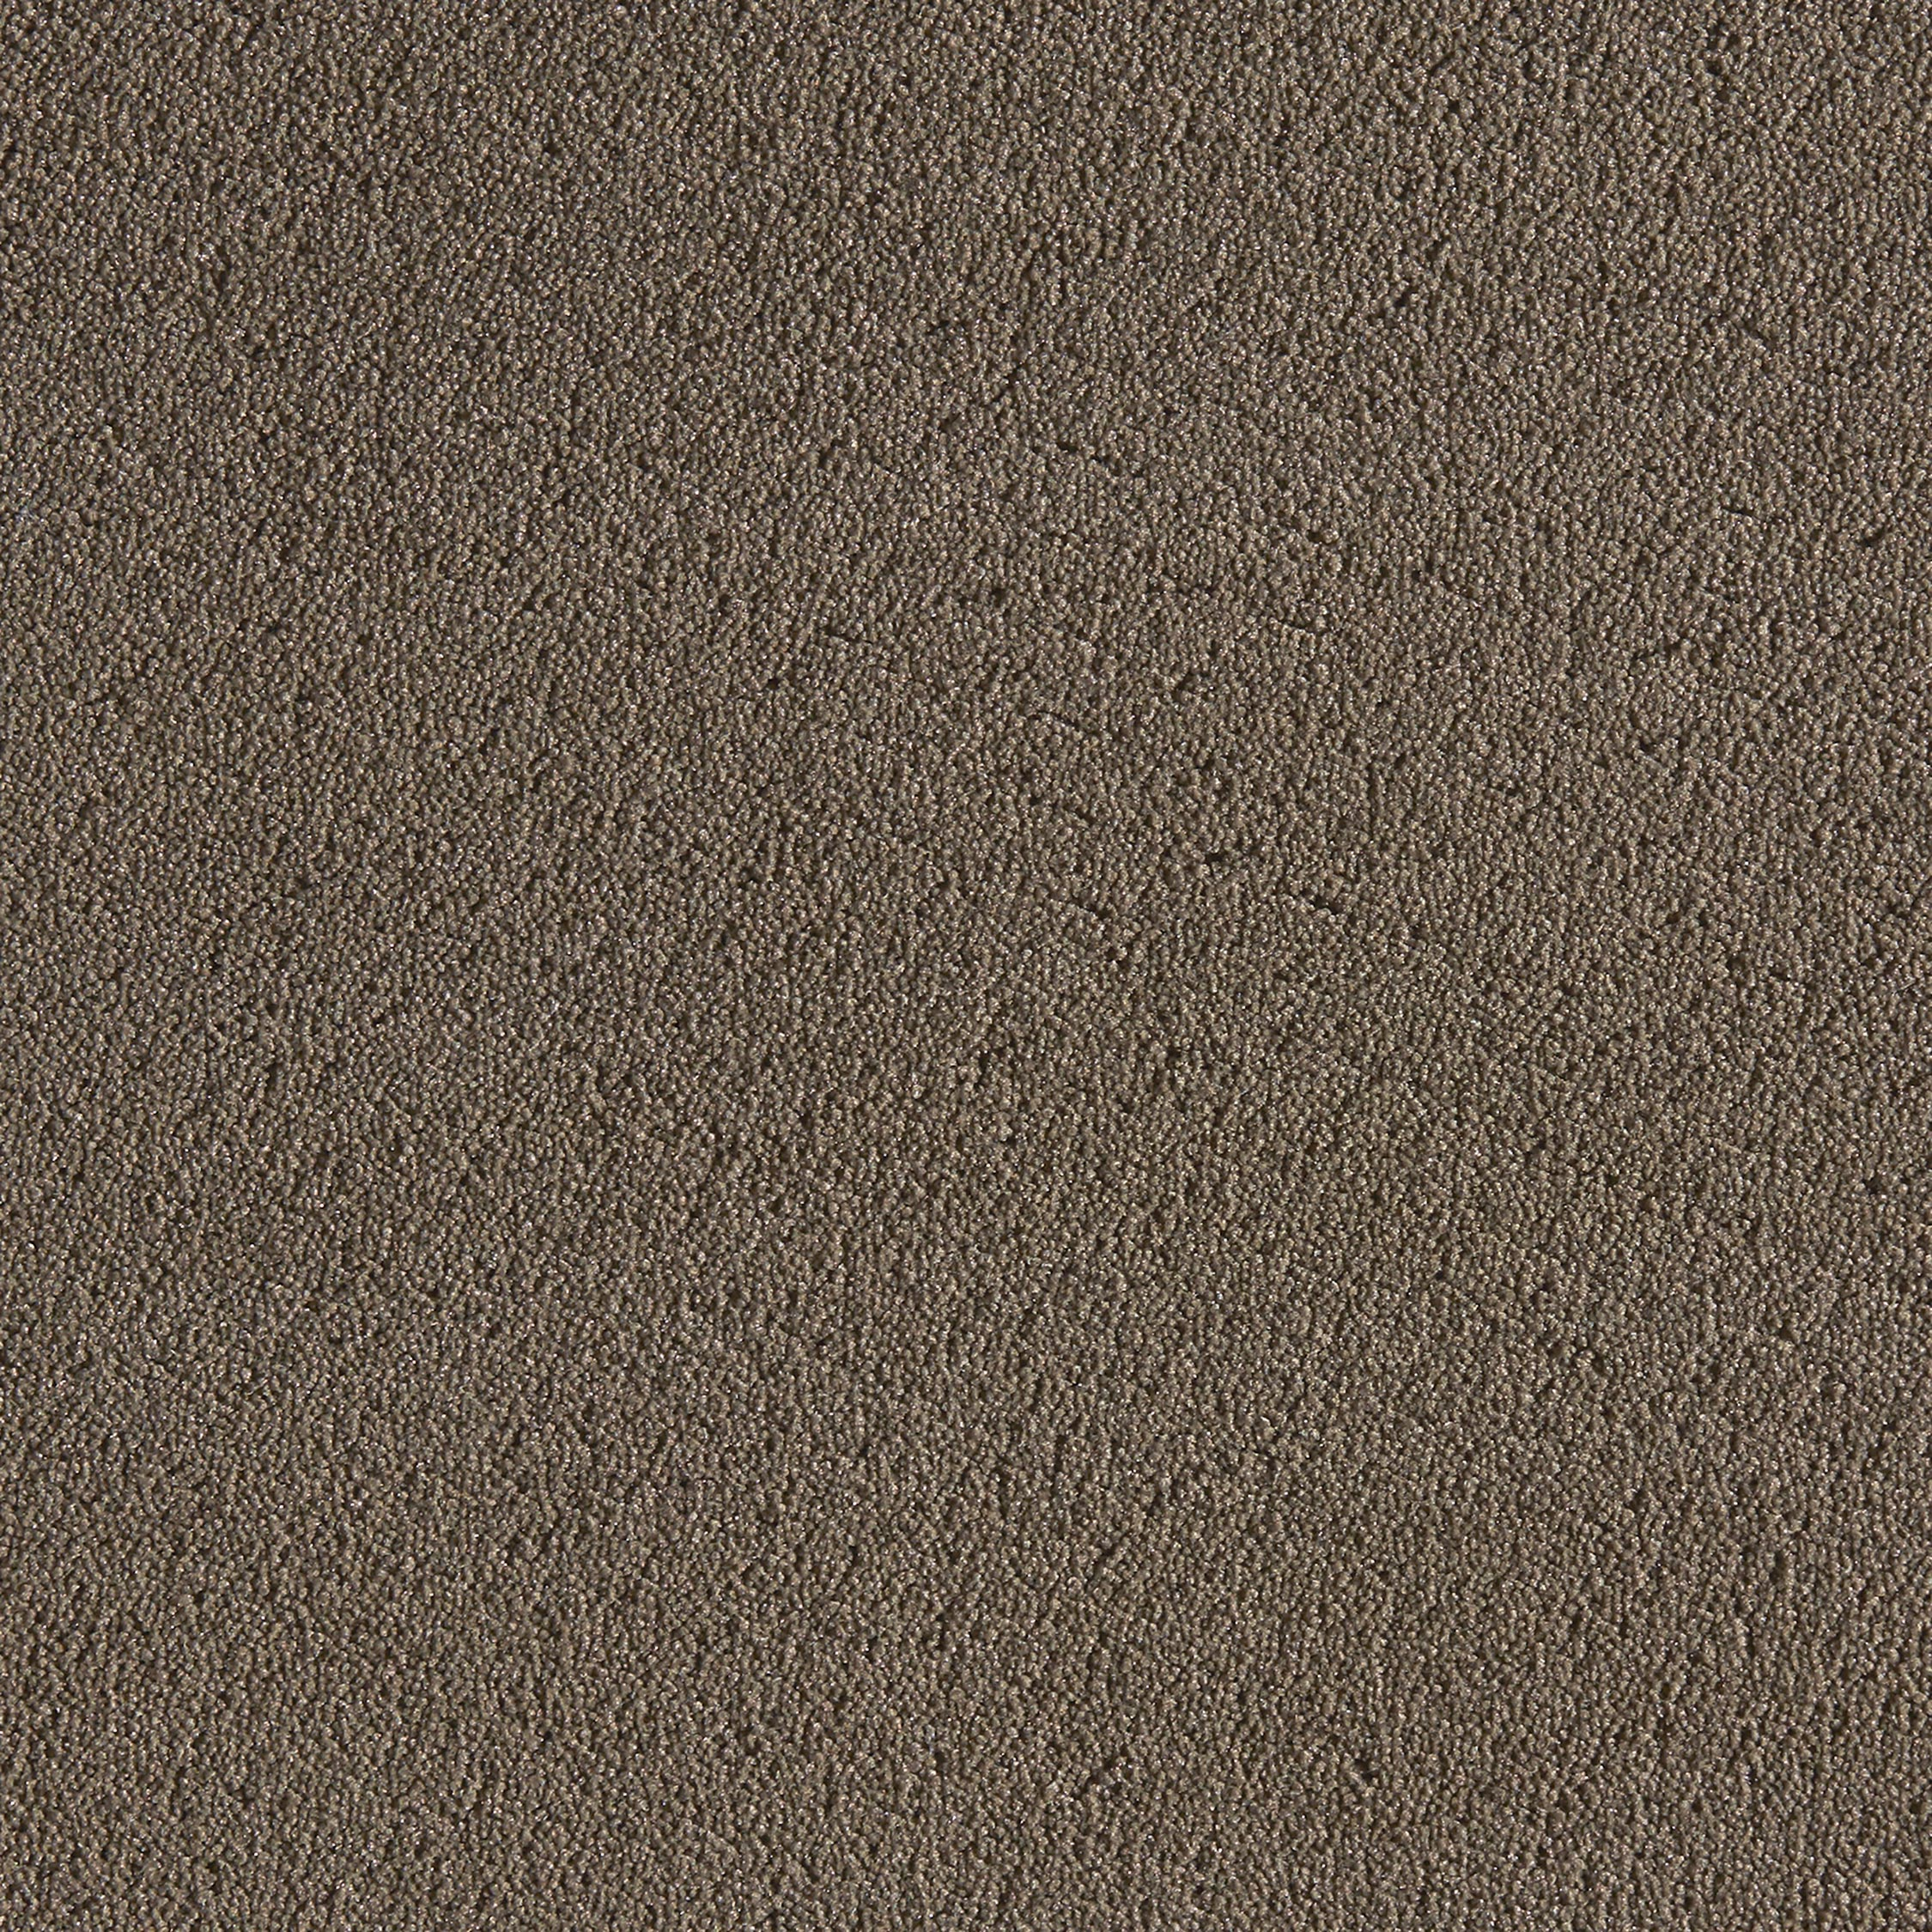 Texture 2000 wt taupe